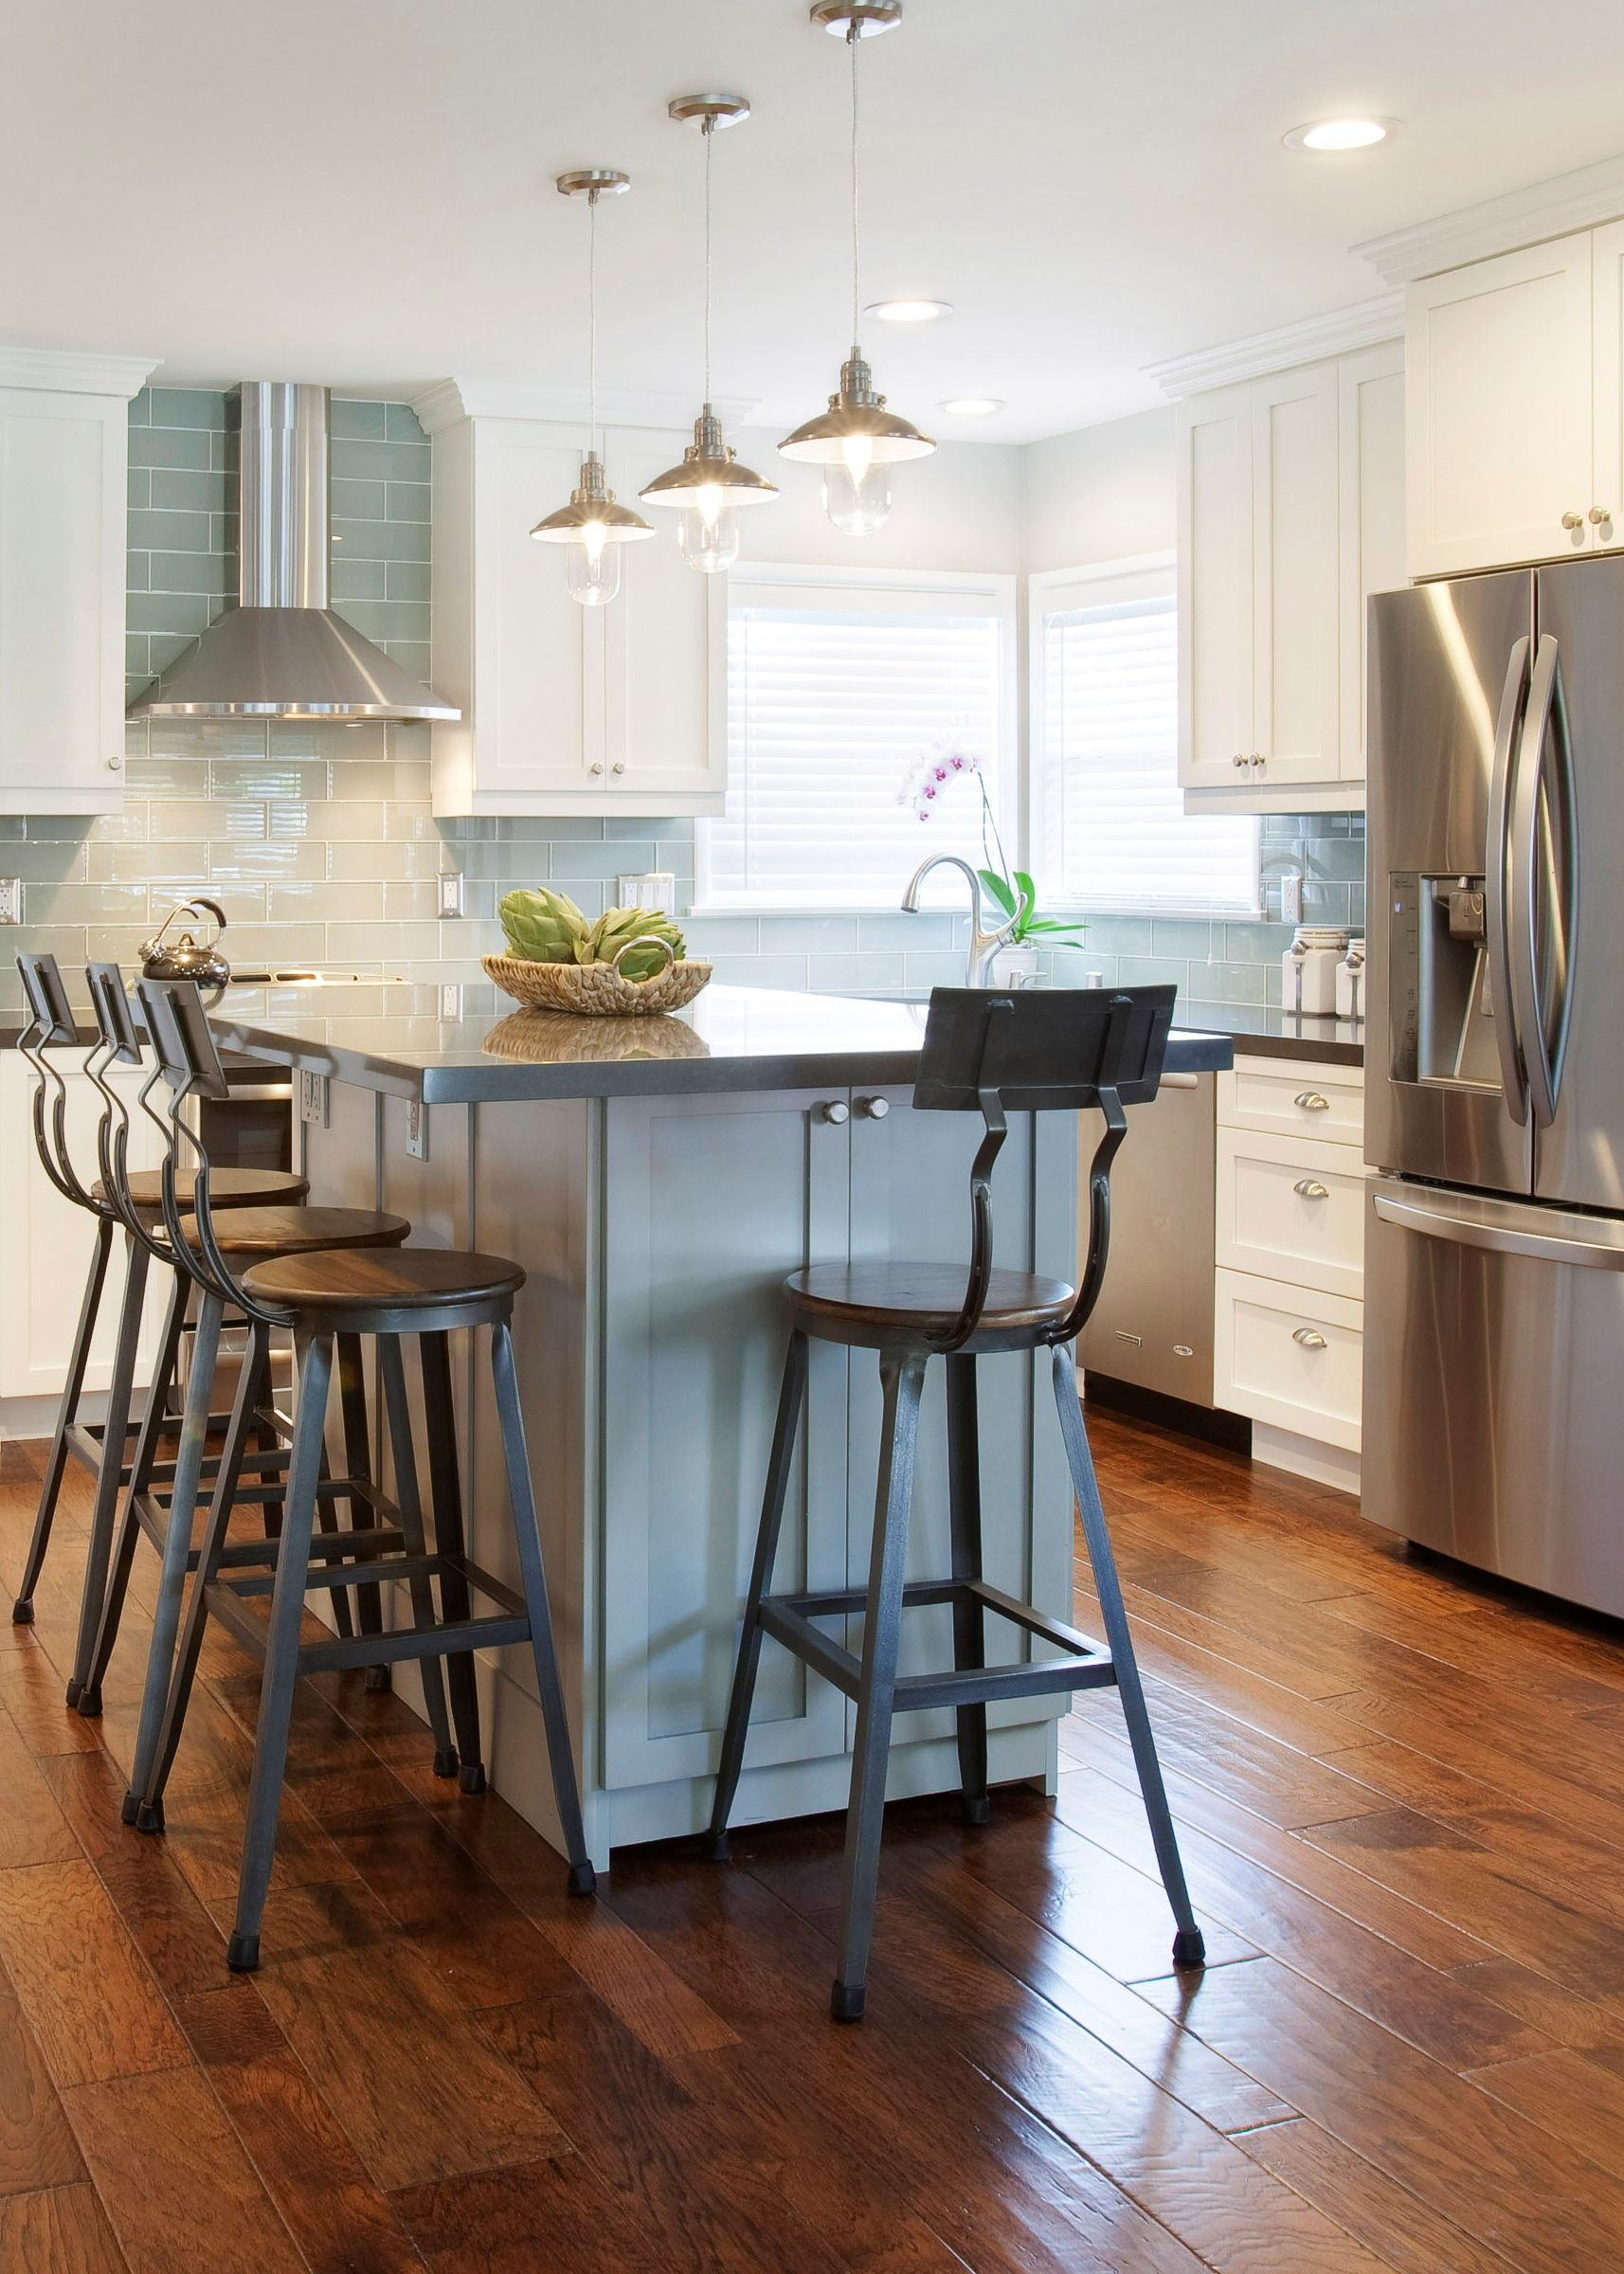 These downtown edison brushed nickel pendant lights in this kitchen